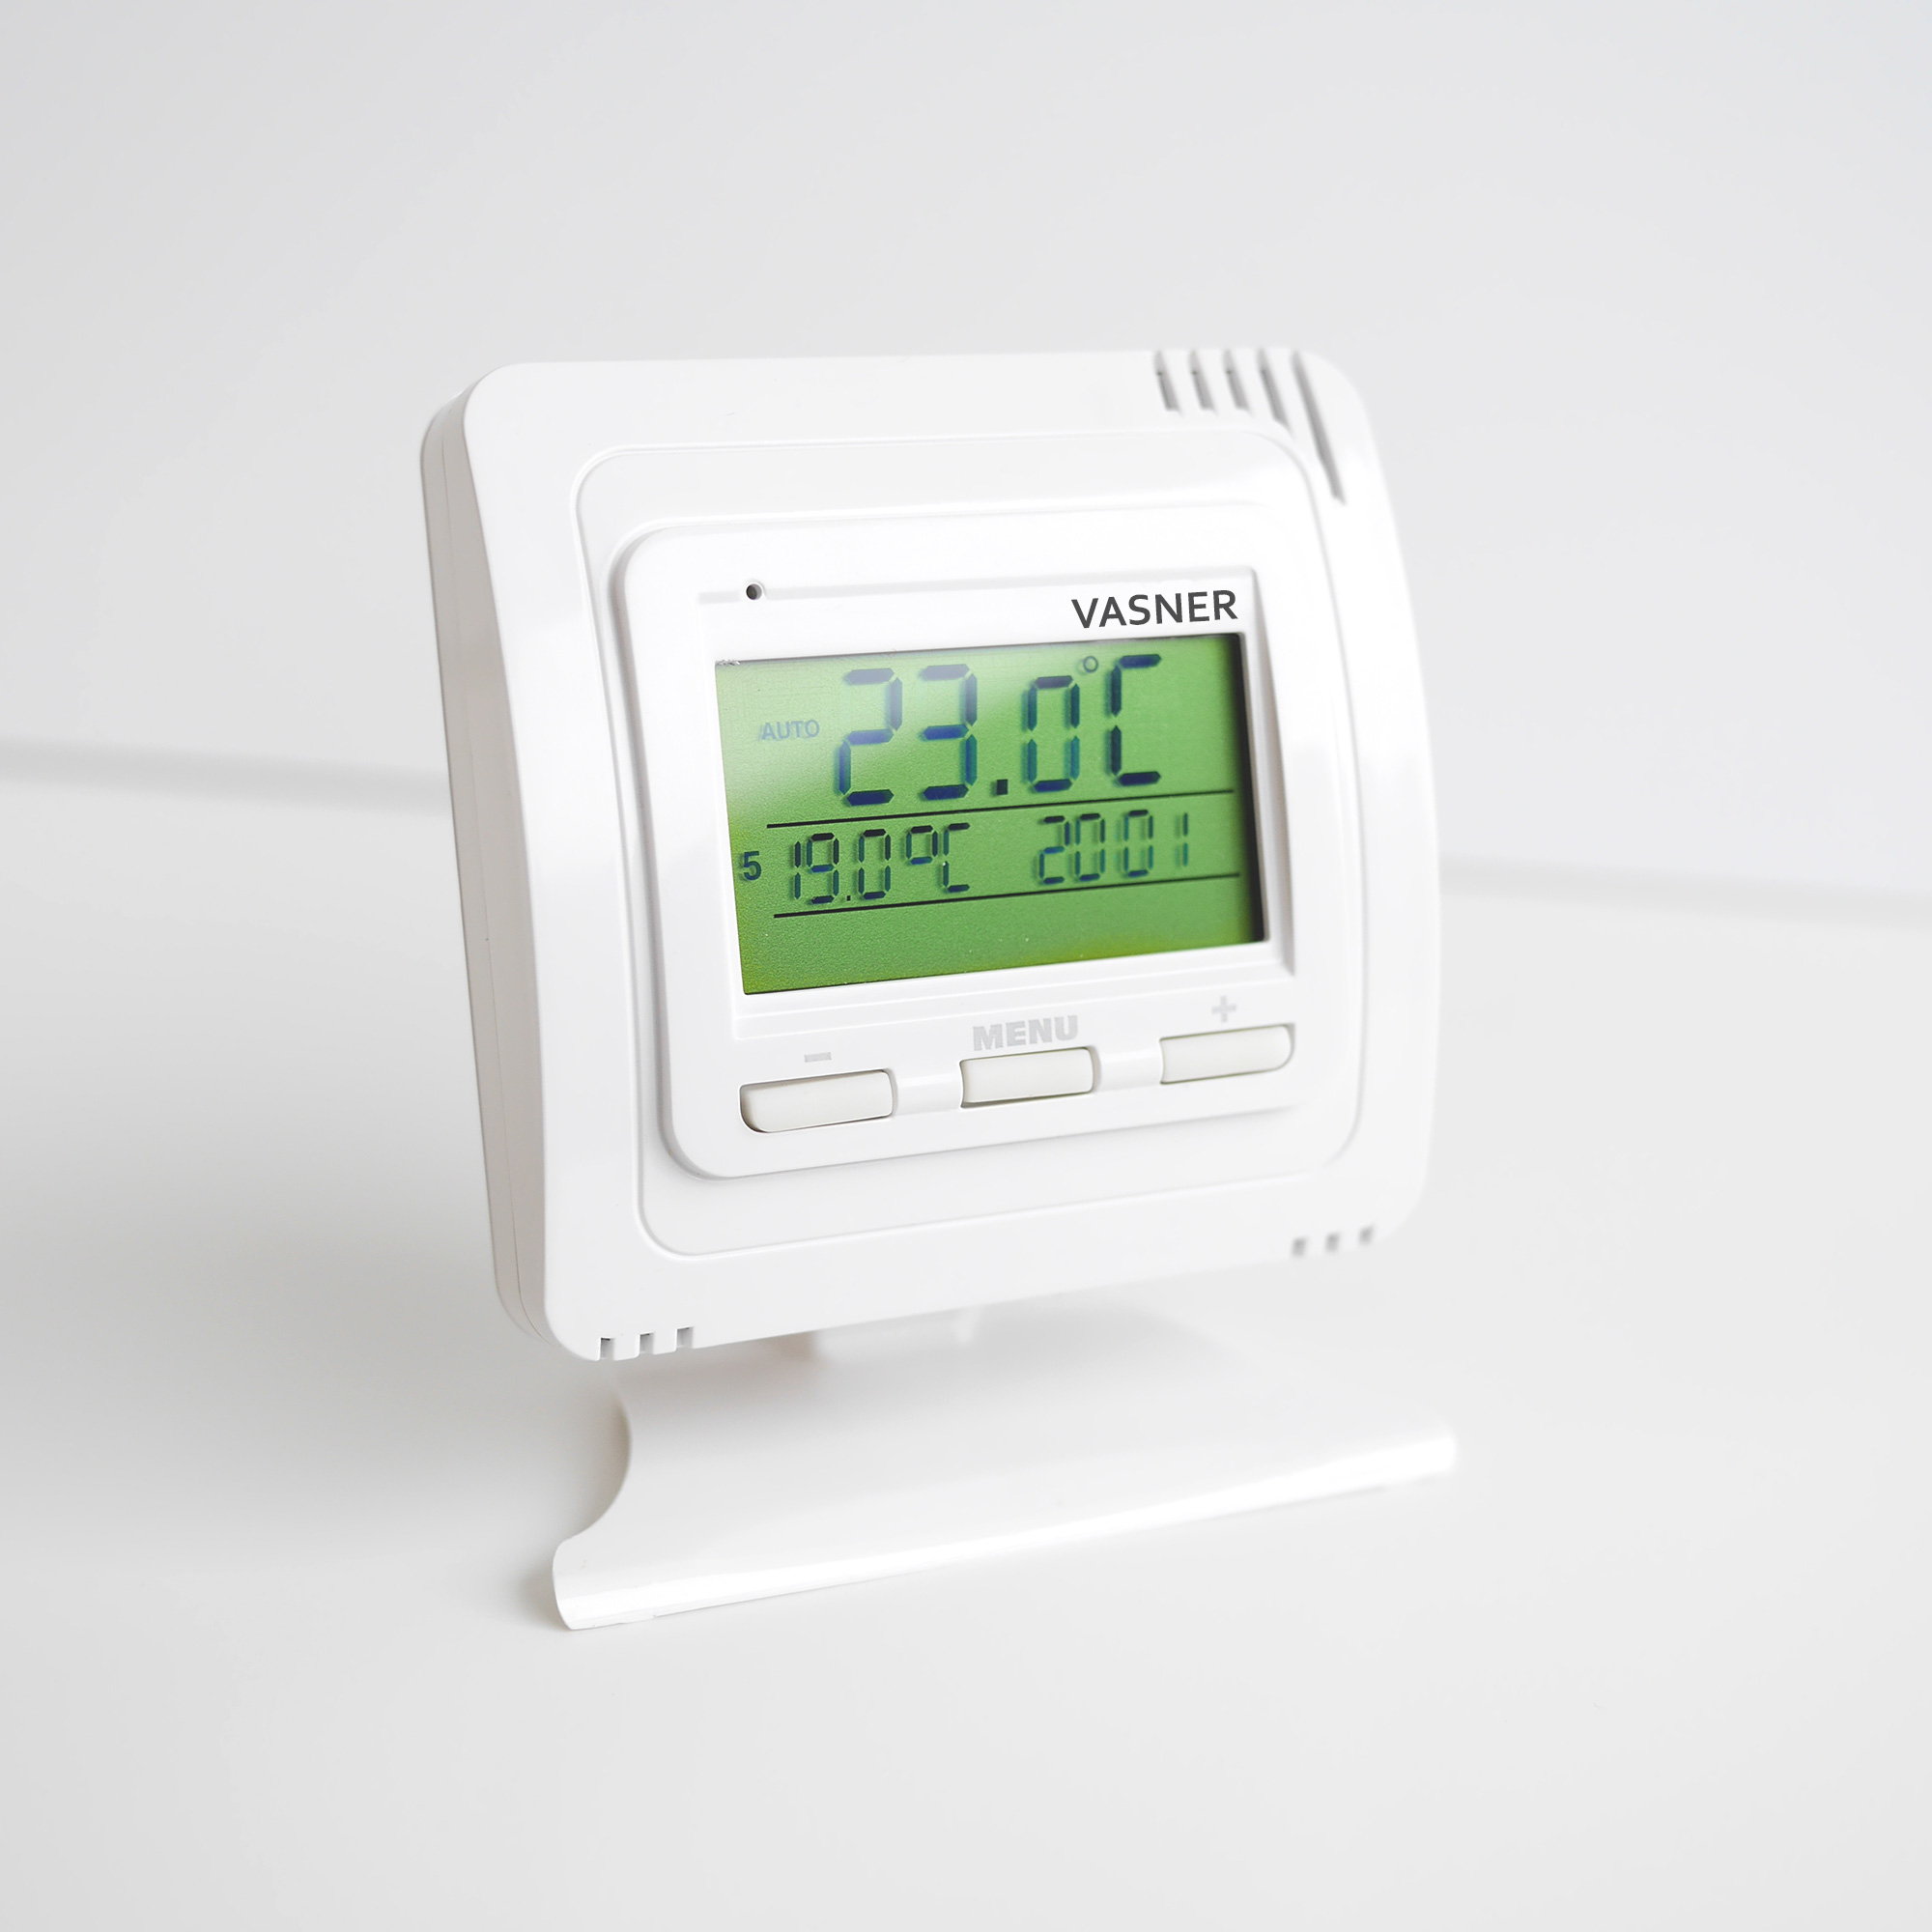 wireless-thermostat-transmitter-with-display